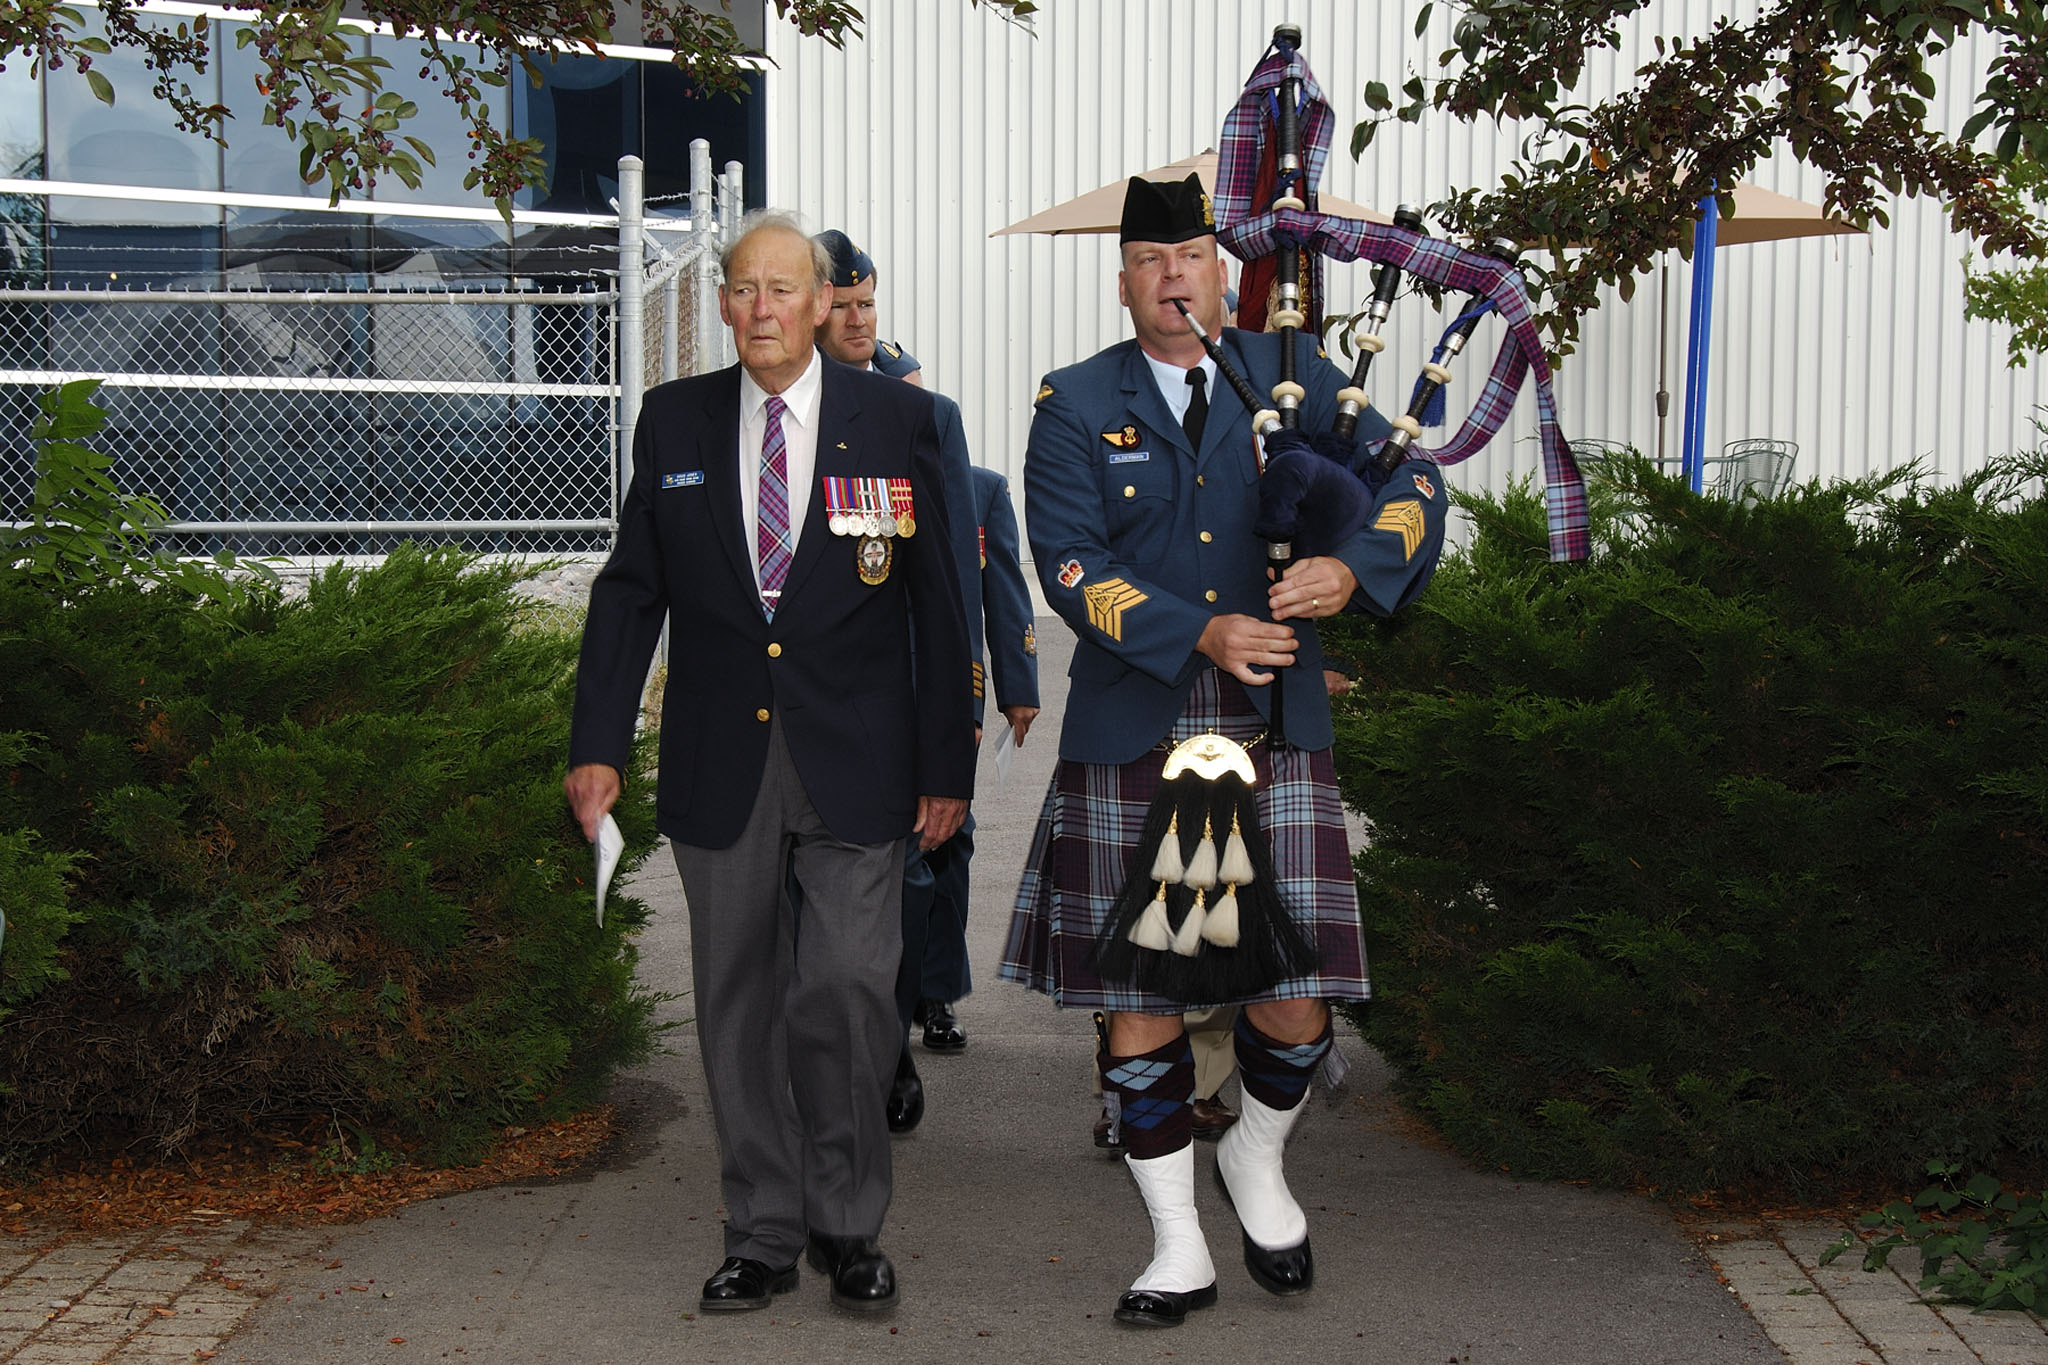 "Mr. Doug Jones (left), President of 426 Thunderbird Squadron Association, with Piper Warrant Officer Sean Alderman (right), wearing the RCAF tartan, during 426 ""Thunderbird"" Squadron Association's Memorial Service on August 15, 2007, at 8 Wing Trenton. PHOTO: Private Isabel Lavallee-Raby"